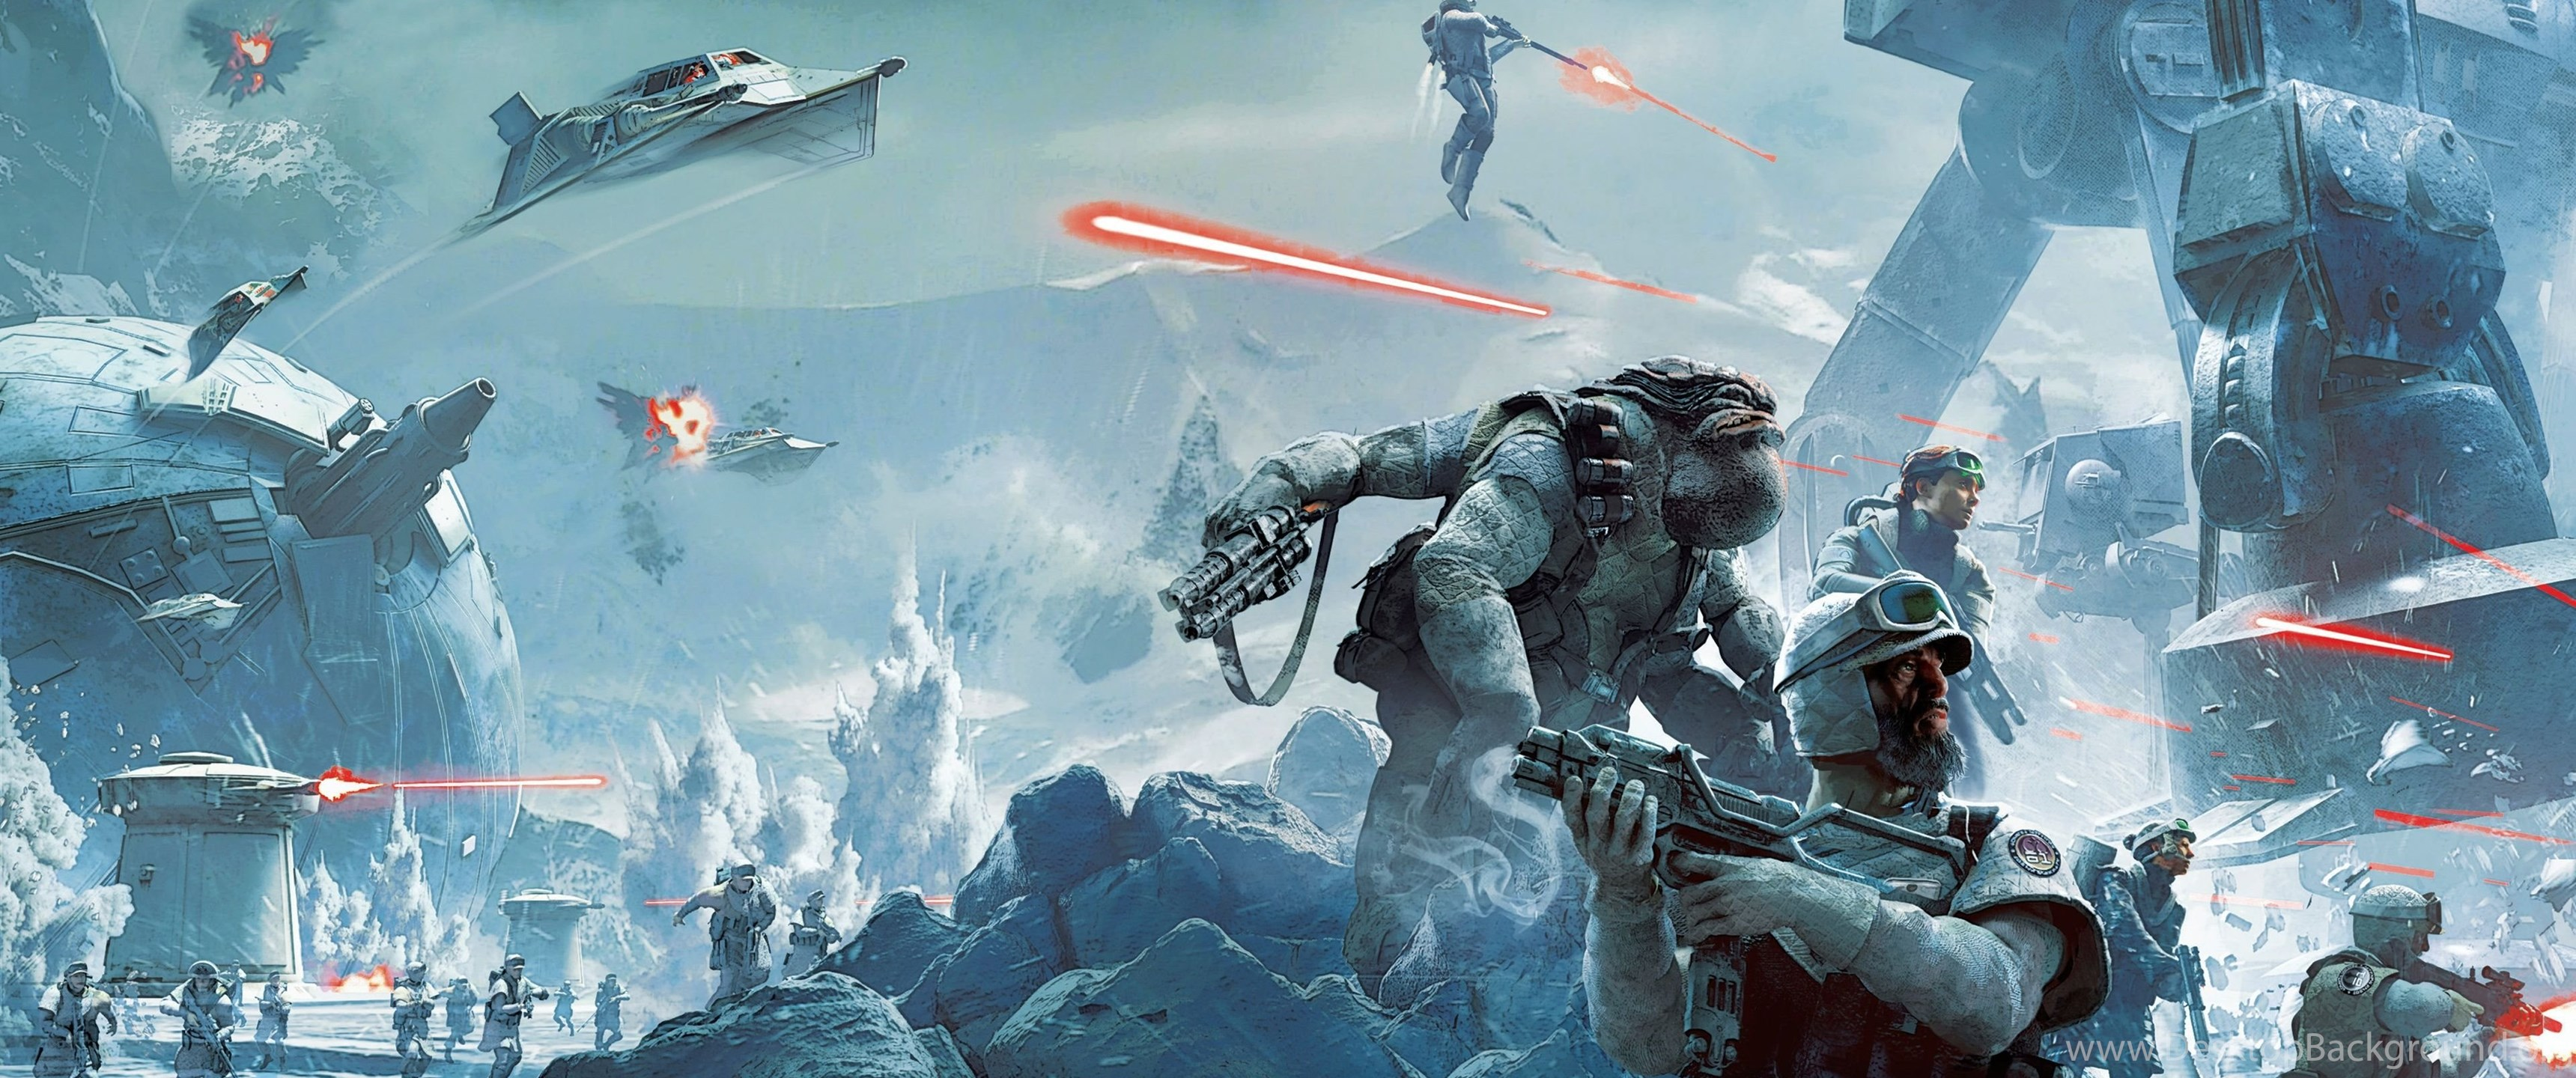 Star Wars 3440x1440 Wallpaper Posted By Sarah Thompson